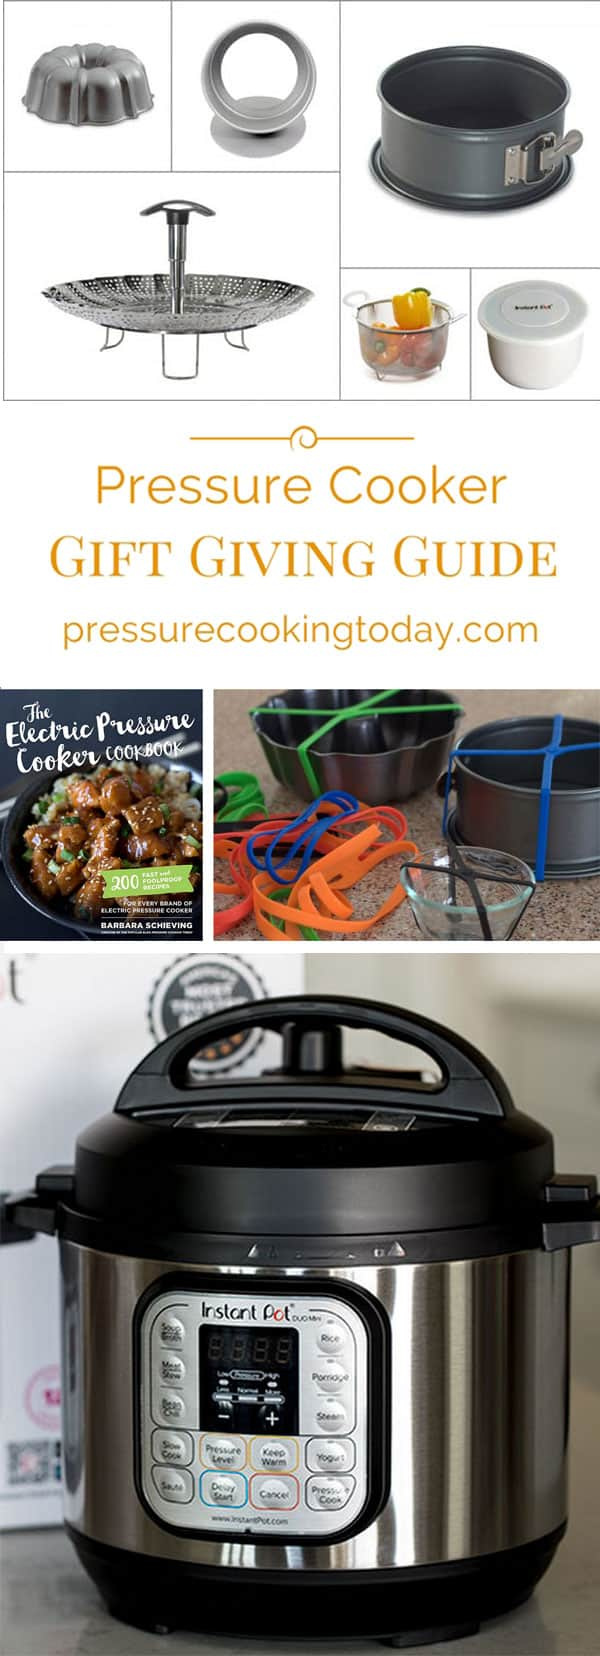 If you're looking for ideas to put on your wishlist, or for the pressure cooker lover in your life, check out my Electric Pressure Cooker Gift Giving Guide.